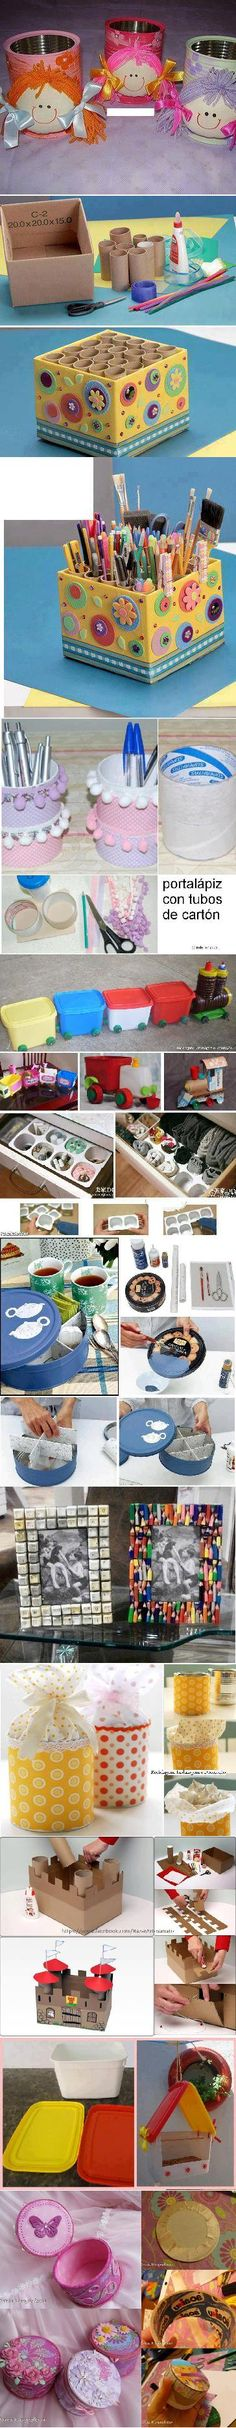 Containers for kids and crafts